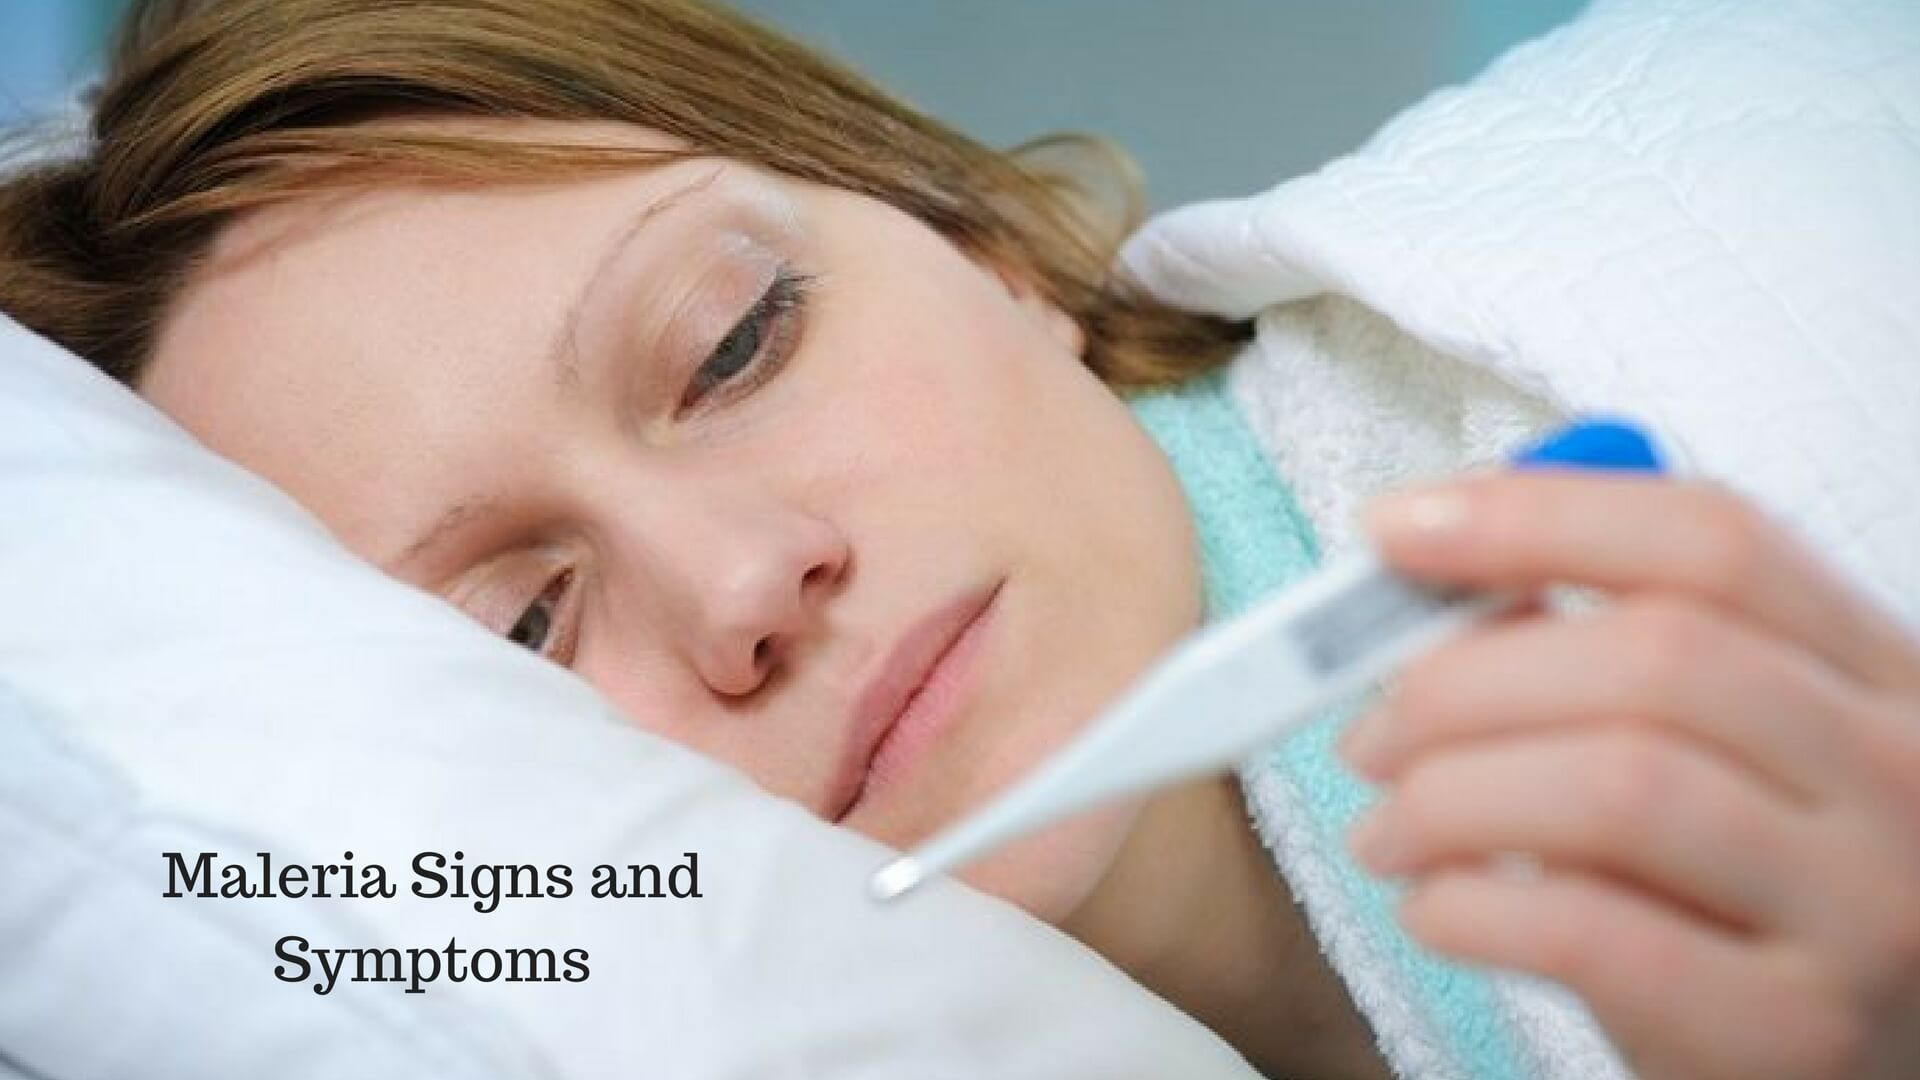 Maleria Signs and Symptoms